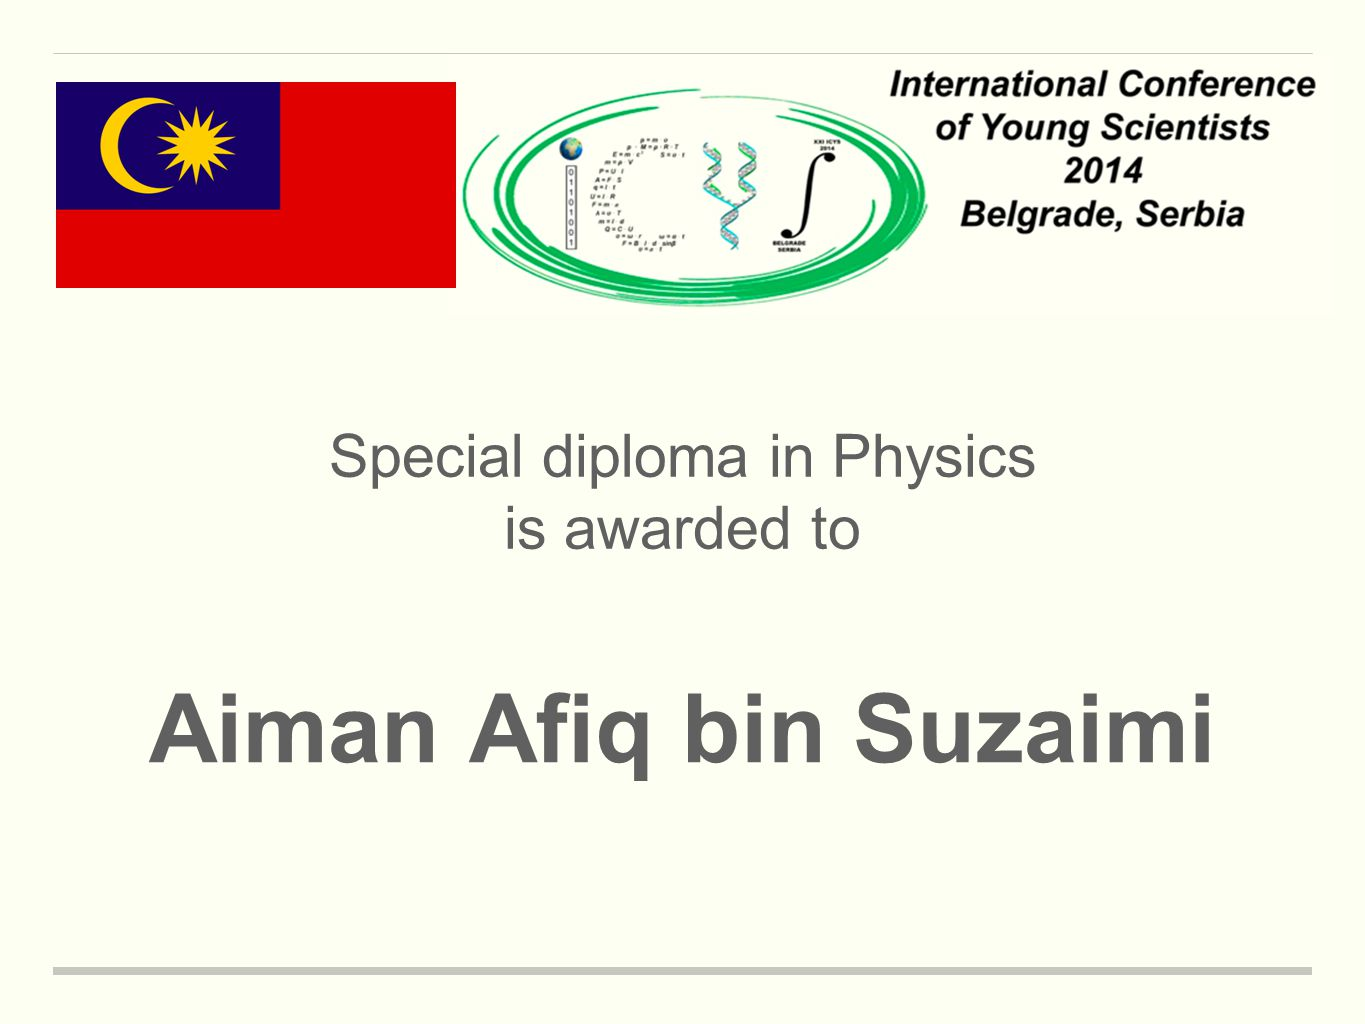 Special diploma in Physics is awarded to Aiman Afiq bin Suzaimi